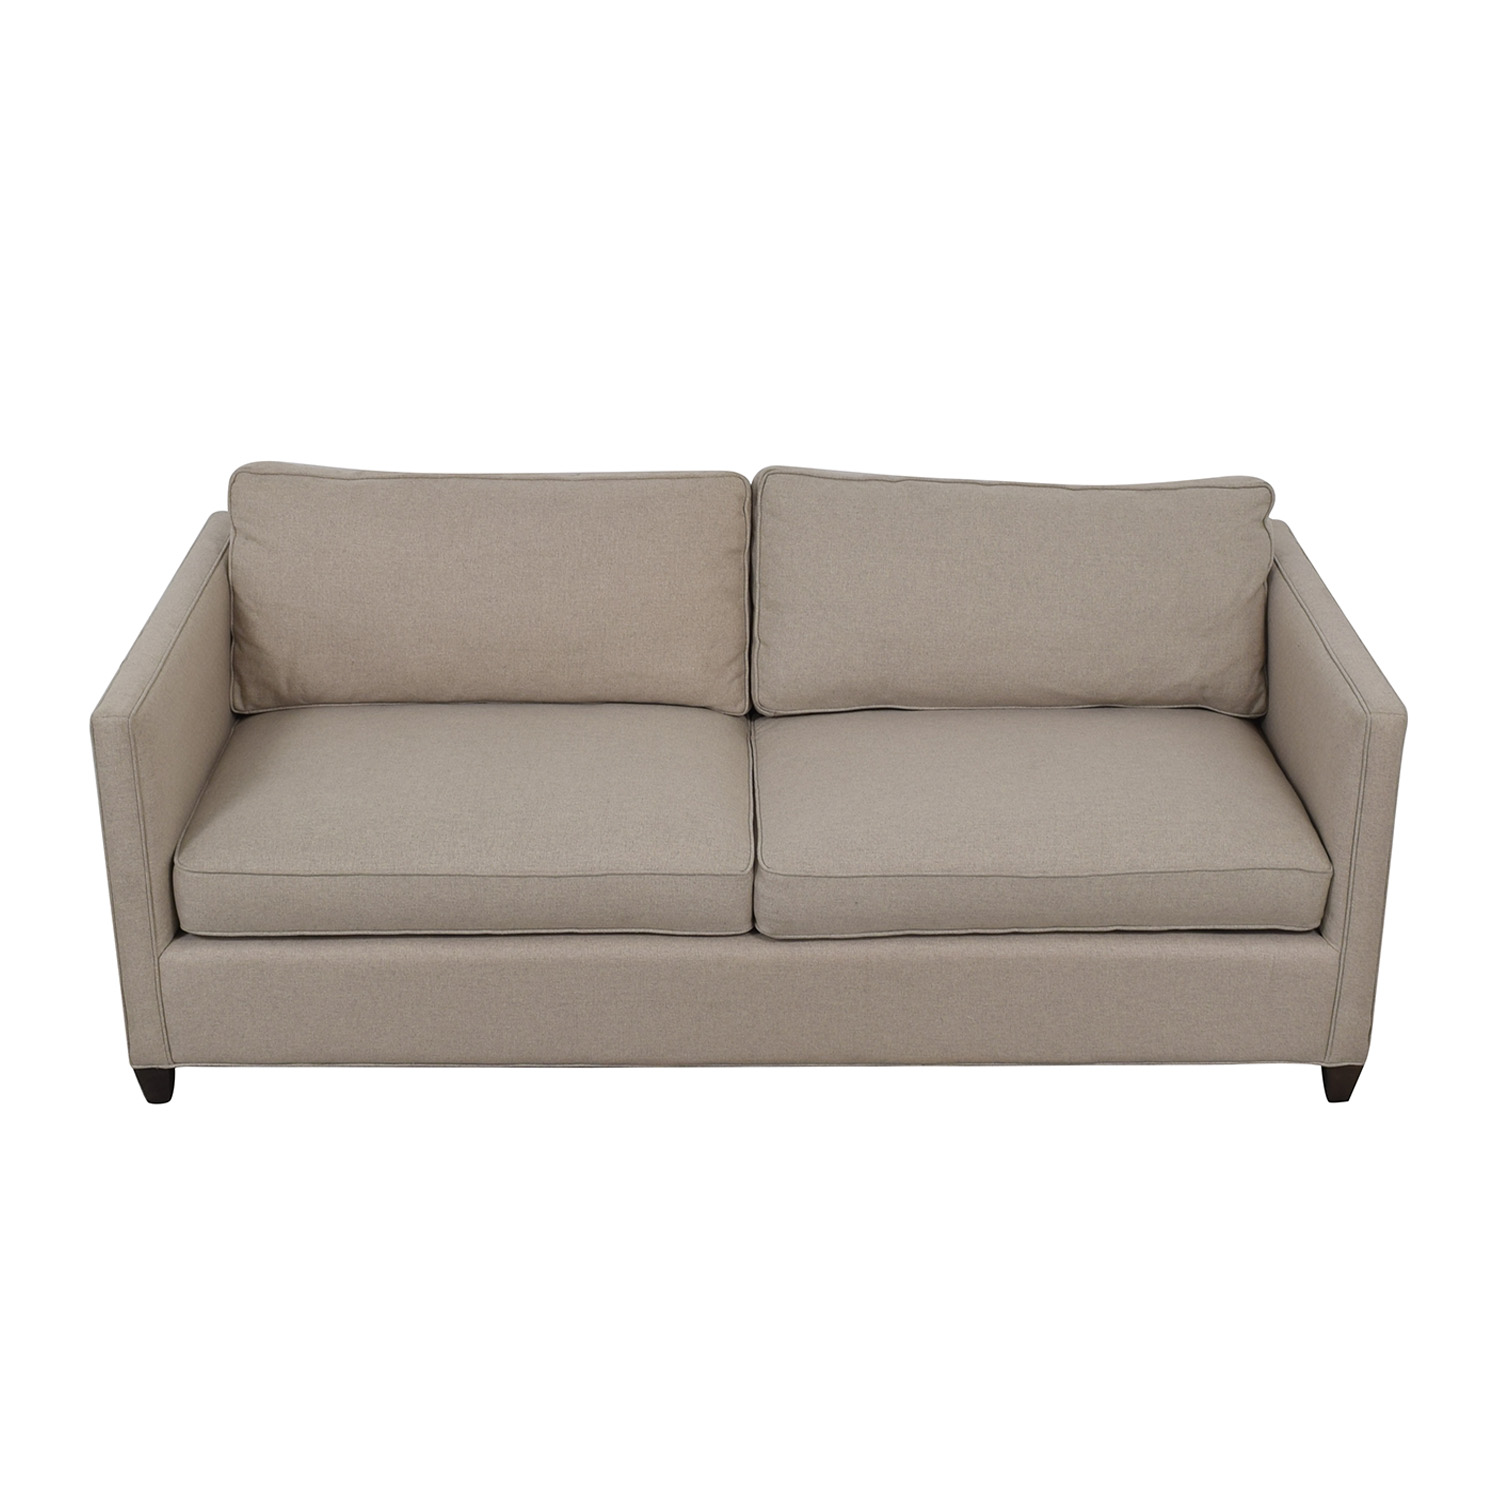 Crate & Barrel Dryden Beige Two Cushion Sofa sale